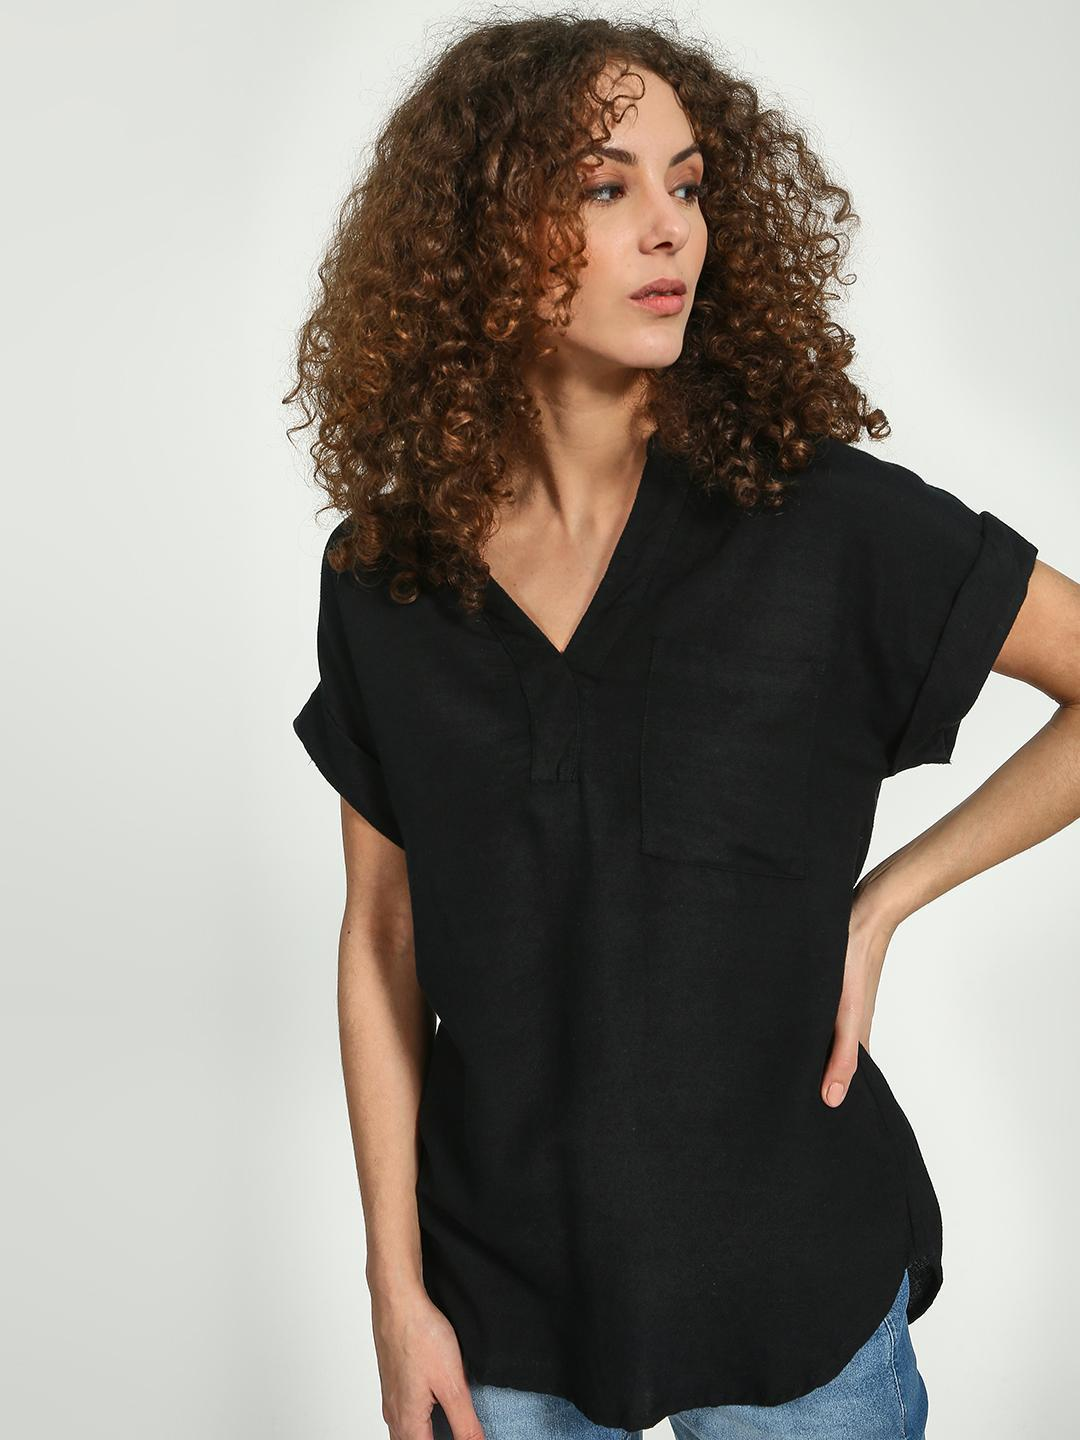 Oxolloxo Black V-neck Short Sleeve Top 1